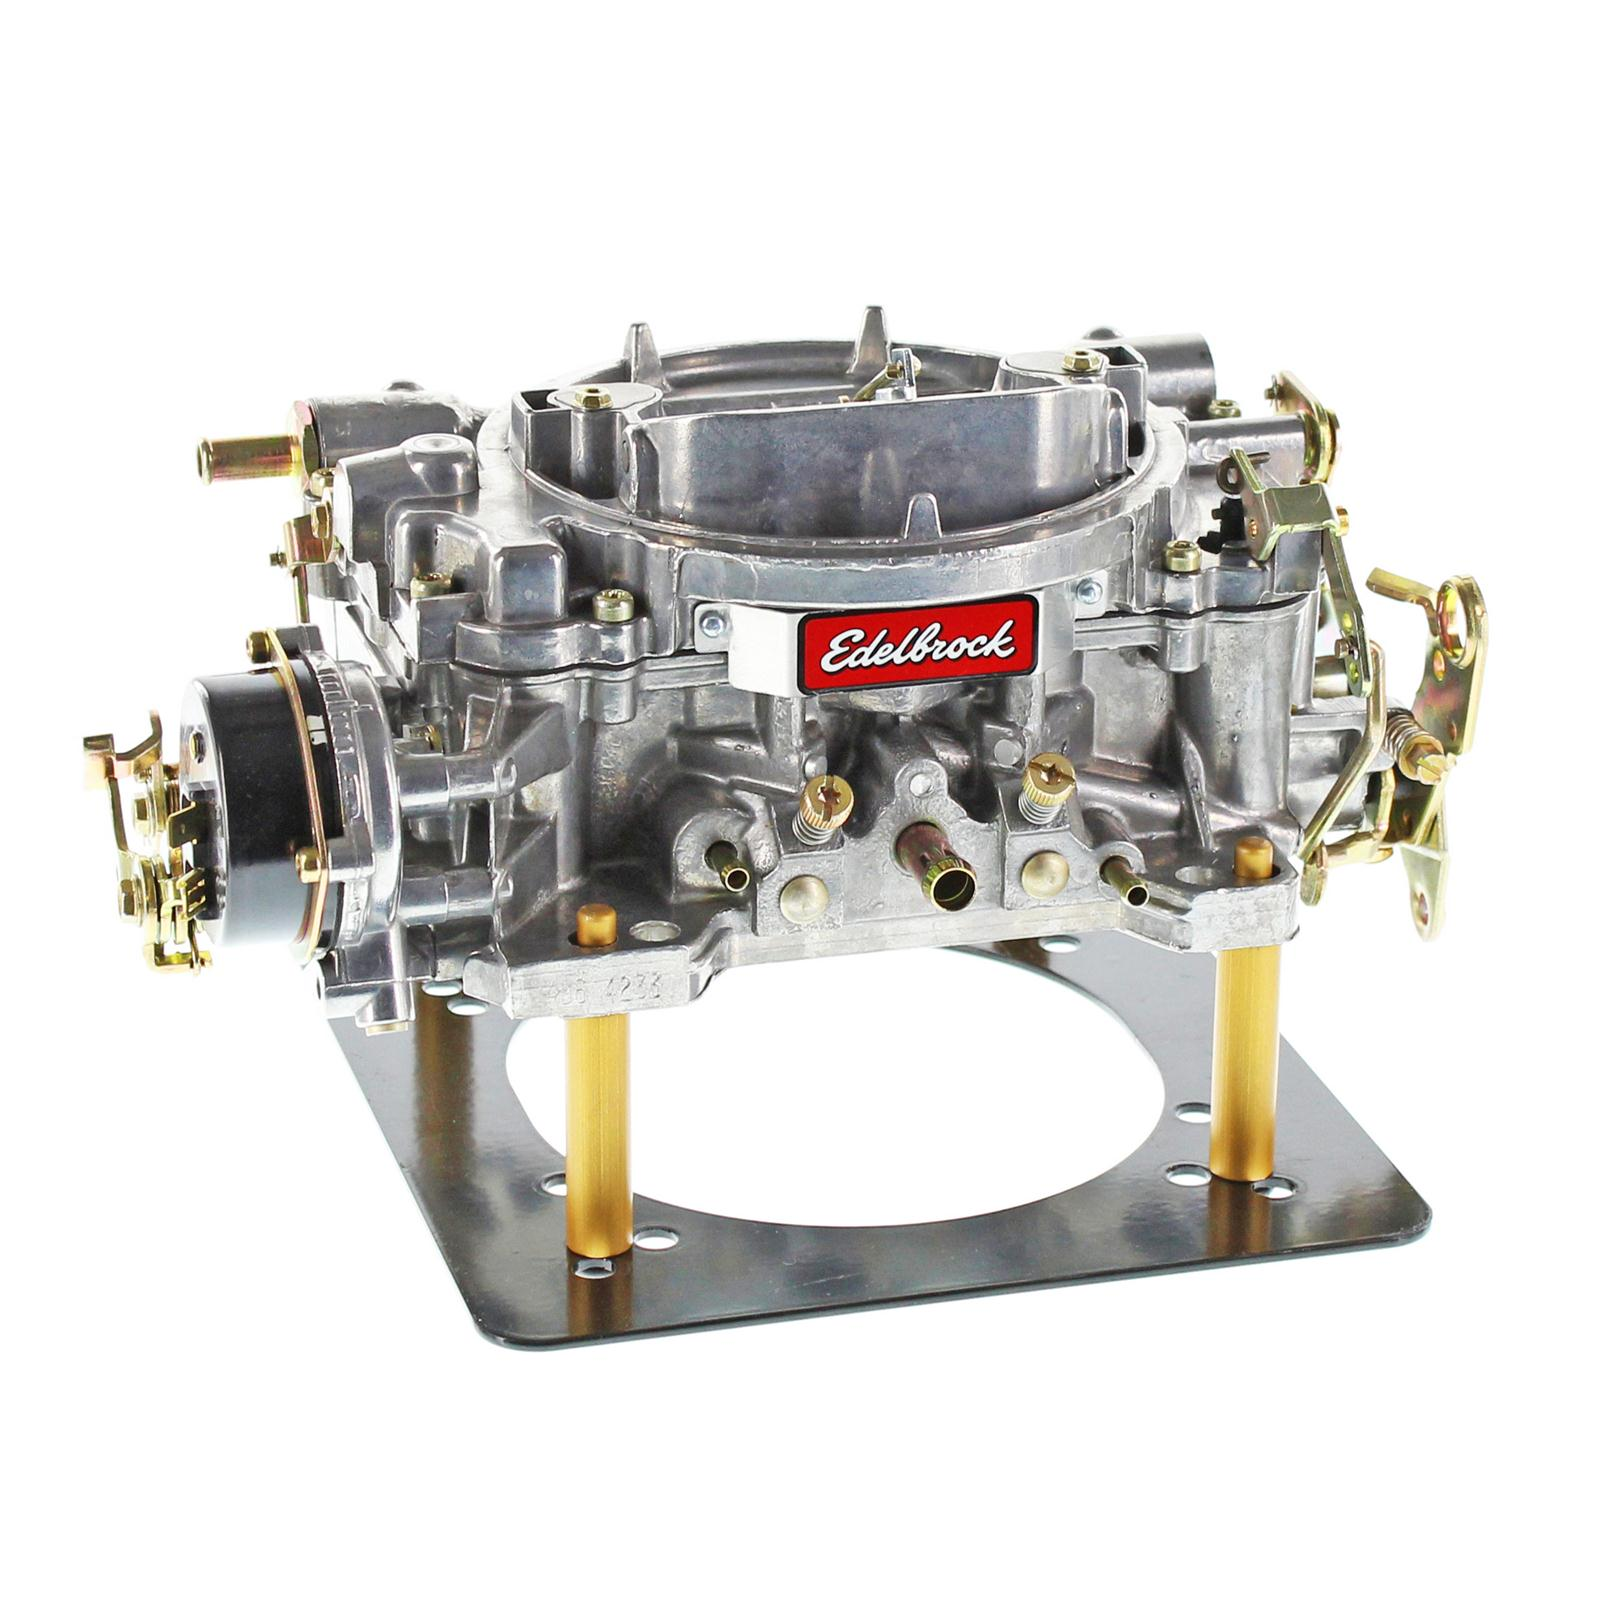 Edelbrock Performer Carburetors 1411 Free Shipping On Orders Over 93 Mustang To Carb Wiring Harness 99 At Summit Racing